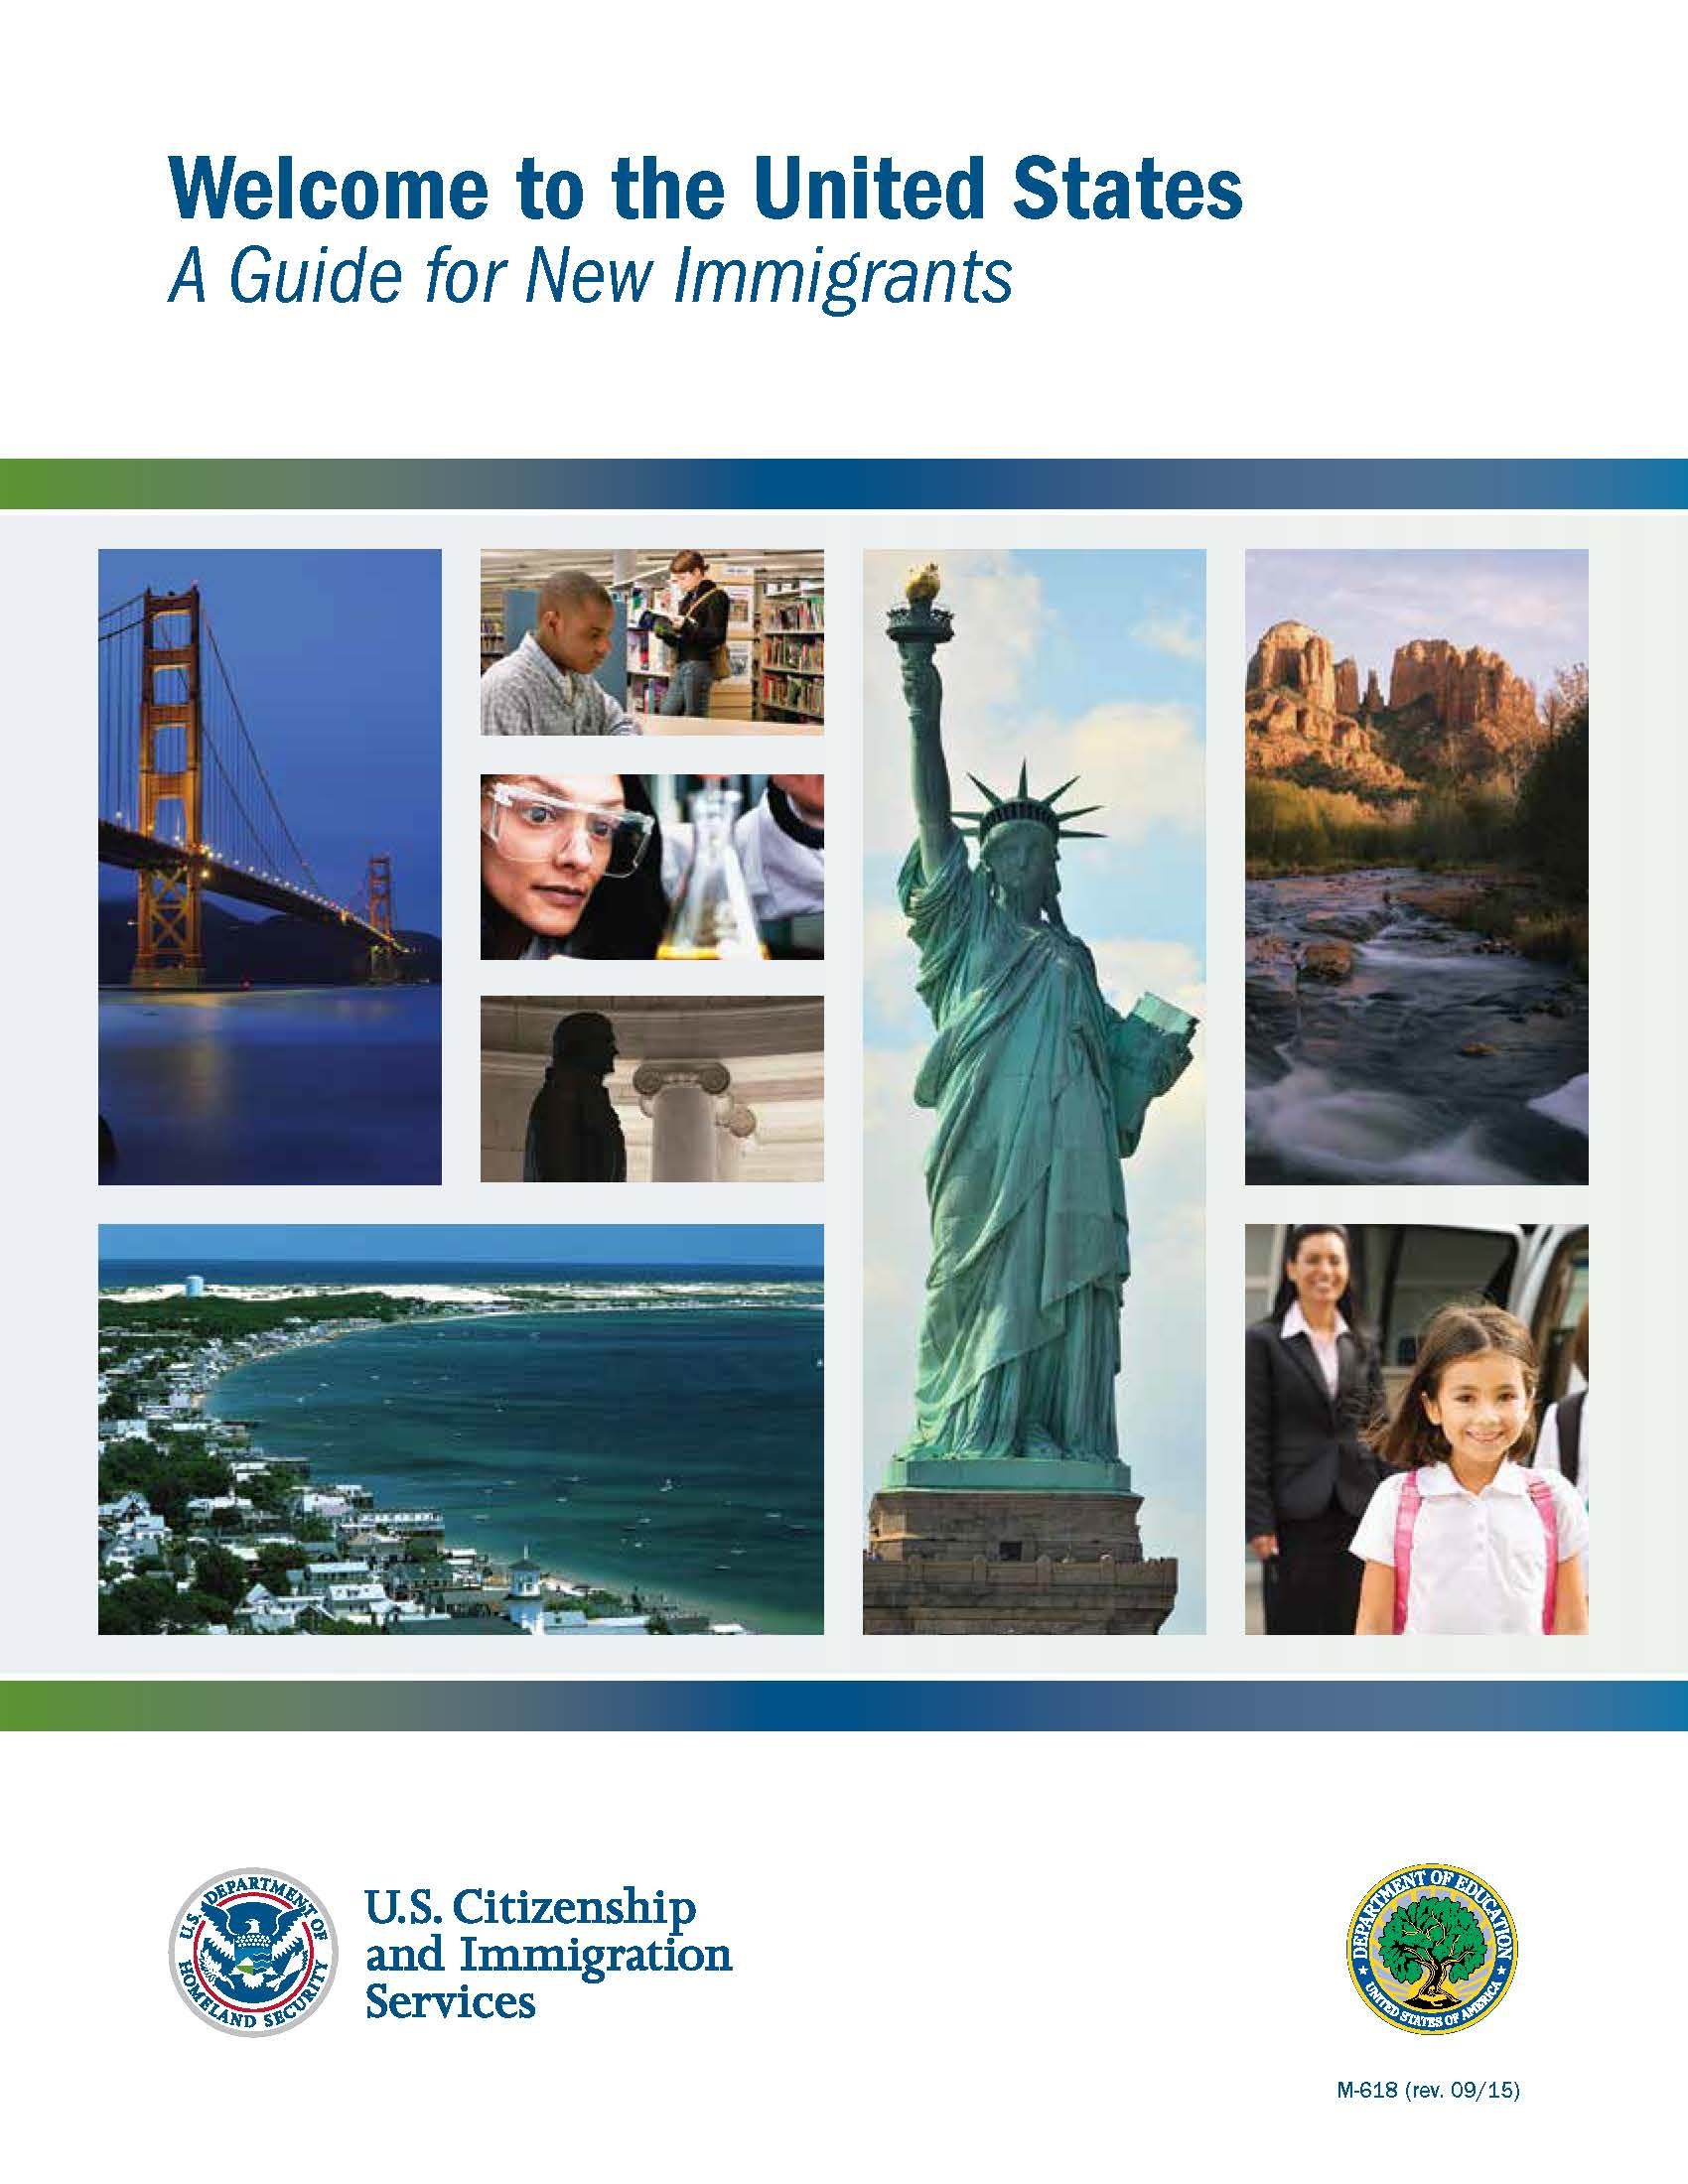 multiculturalism in the united states and the benefits of immigrants to the united states The united states remains an immigrant nation, in spirit as well as in fact  my story is of course very different to most immigrants – but the point is, all of our stories are different.